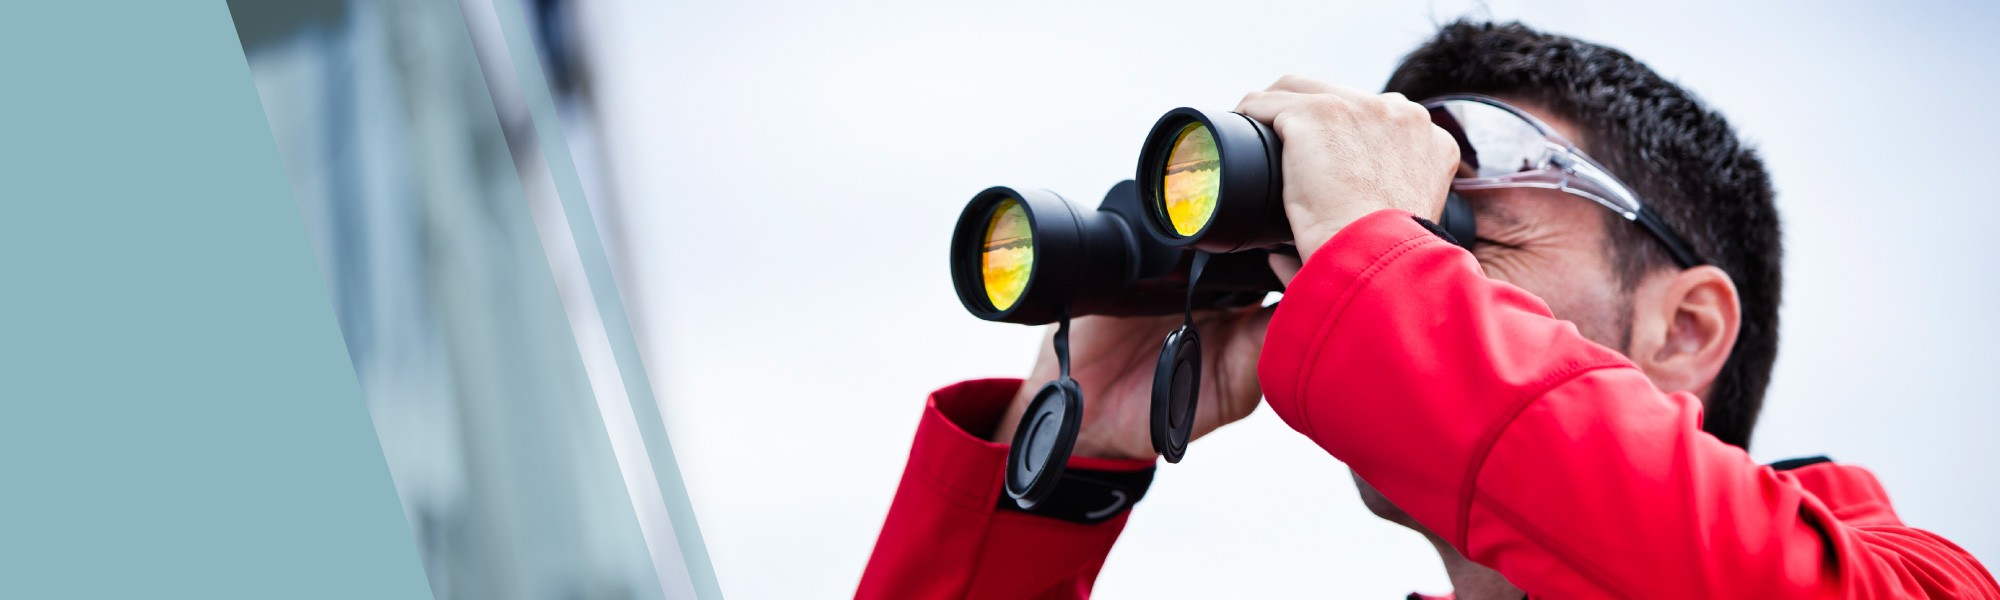 man looking through binoculars in red coat